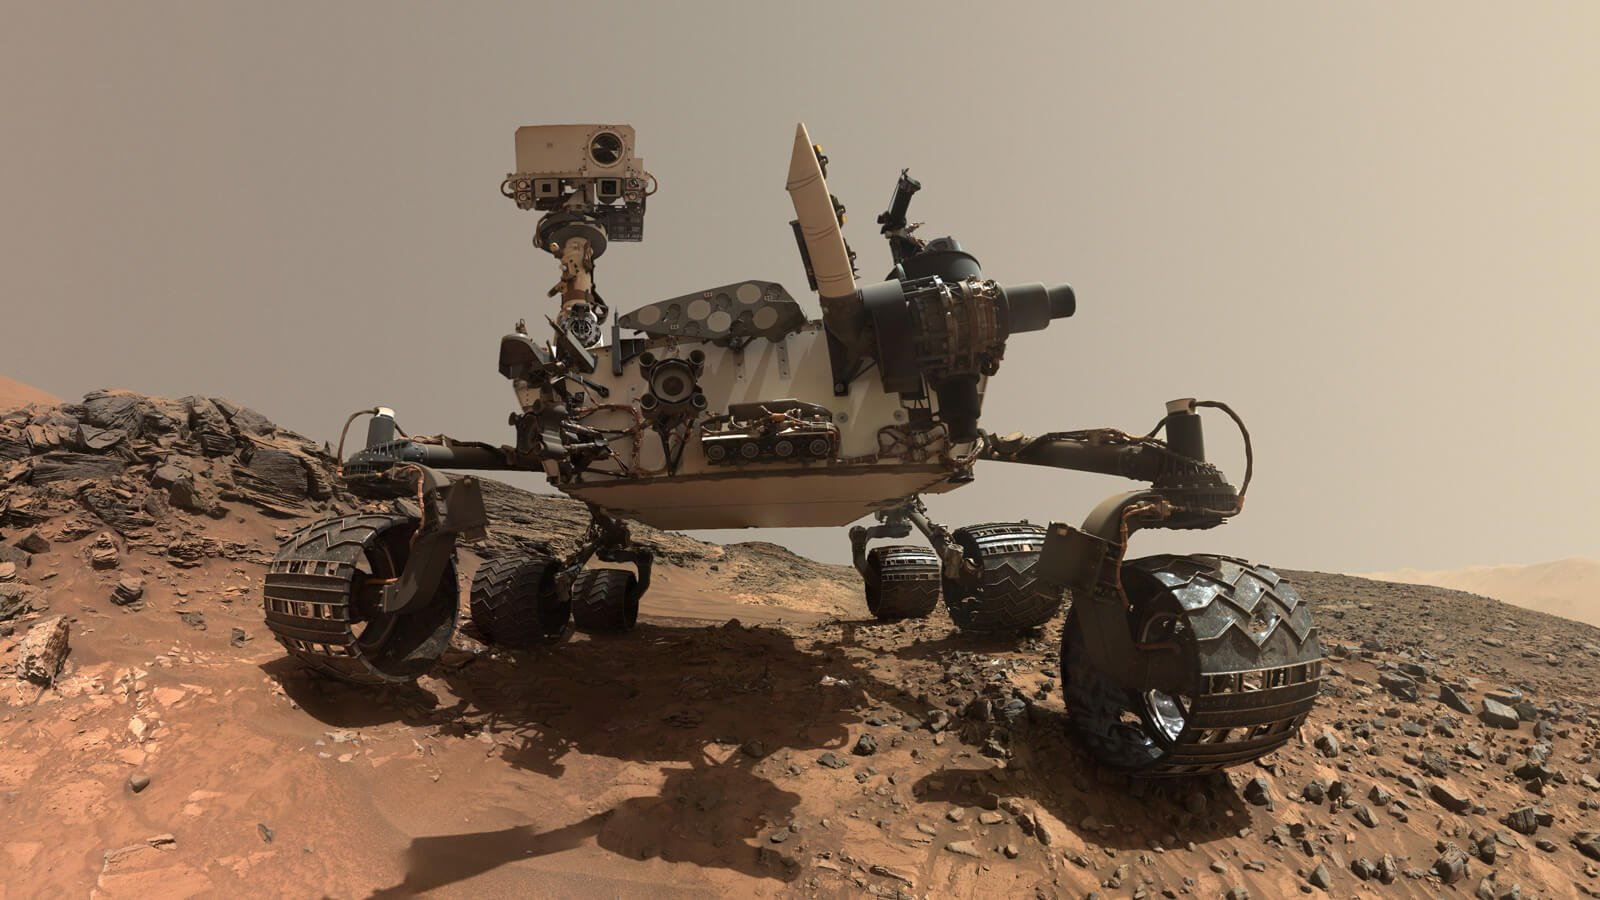 Curiosity has recorded a rise in the concentration of oxygen on Mars